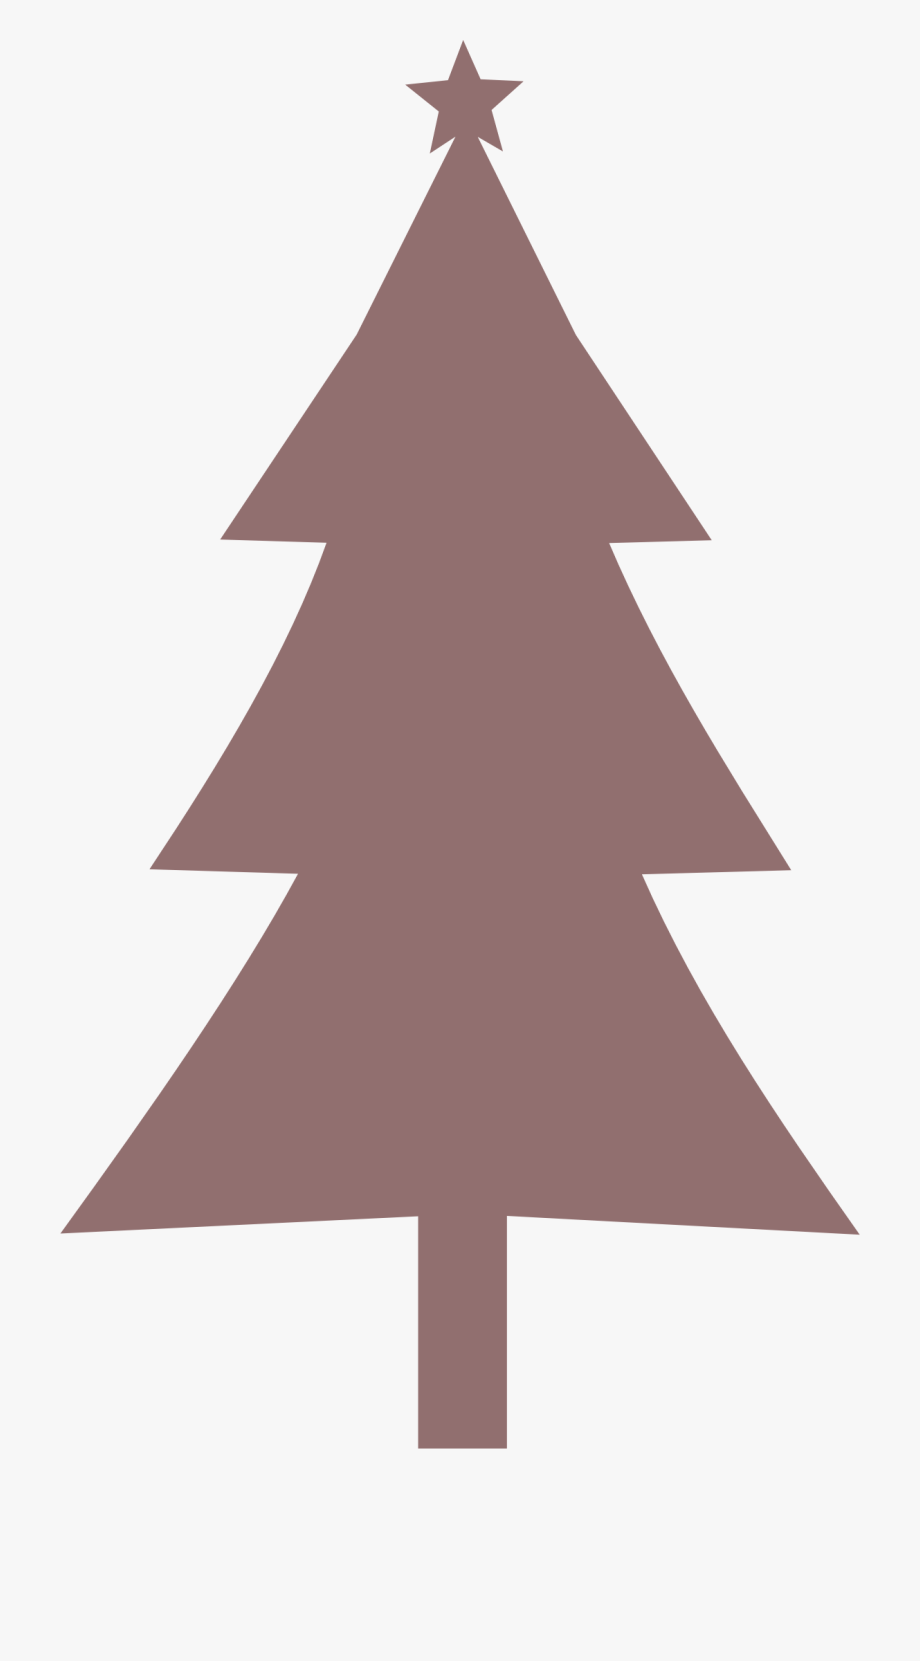 Christmas tree top view clipart royalty free download Christmas Tree Clipart Large - White Christmas Tree Silhouette ... royalty free download